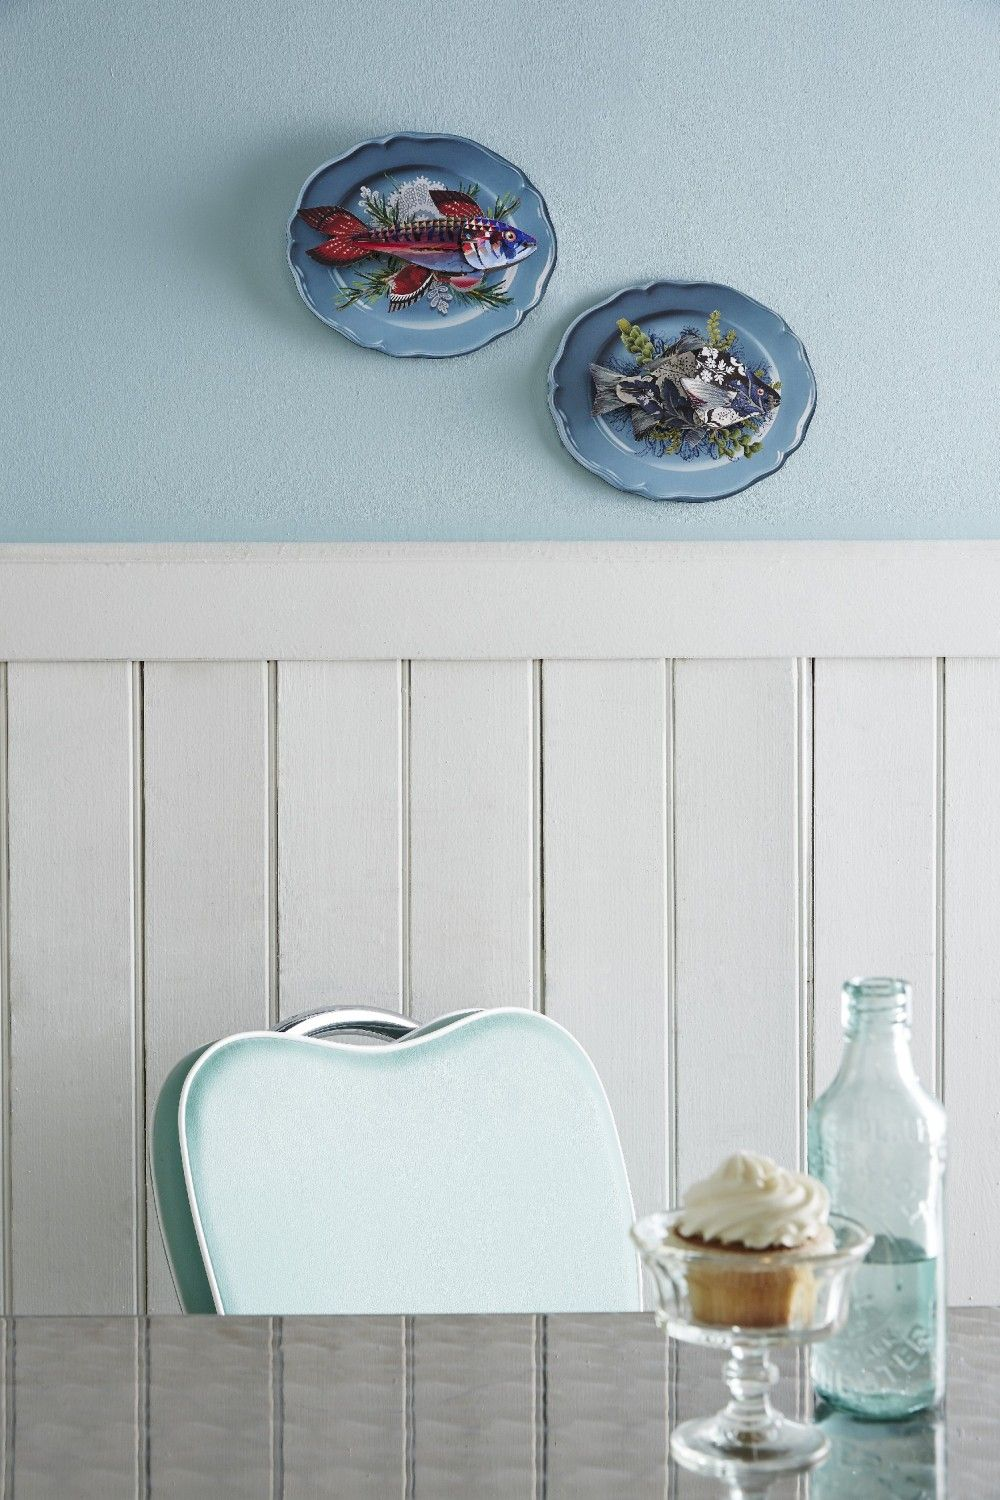 Miho Unexpected Things _ Mdf decorative plates: a great set for your ...